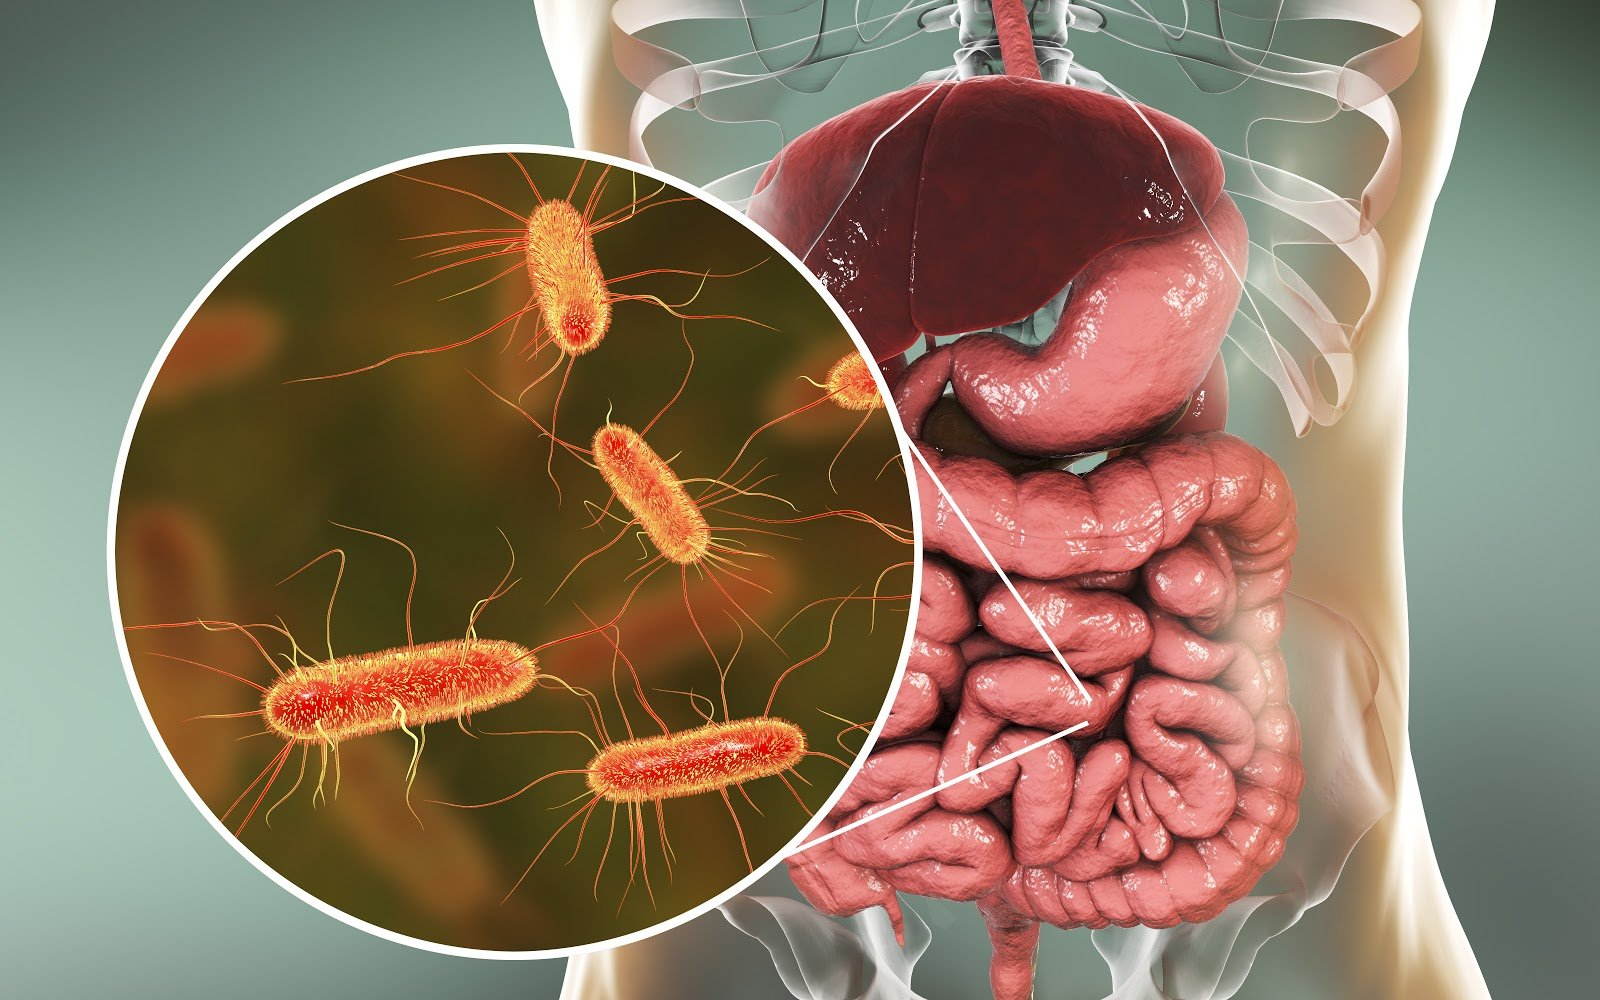 3D illustration of the digestive system with E.coli bacteria zoomed in